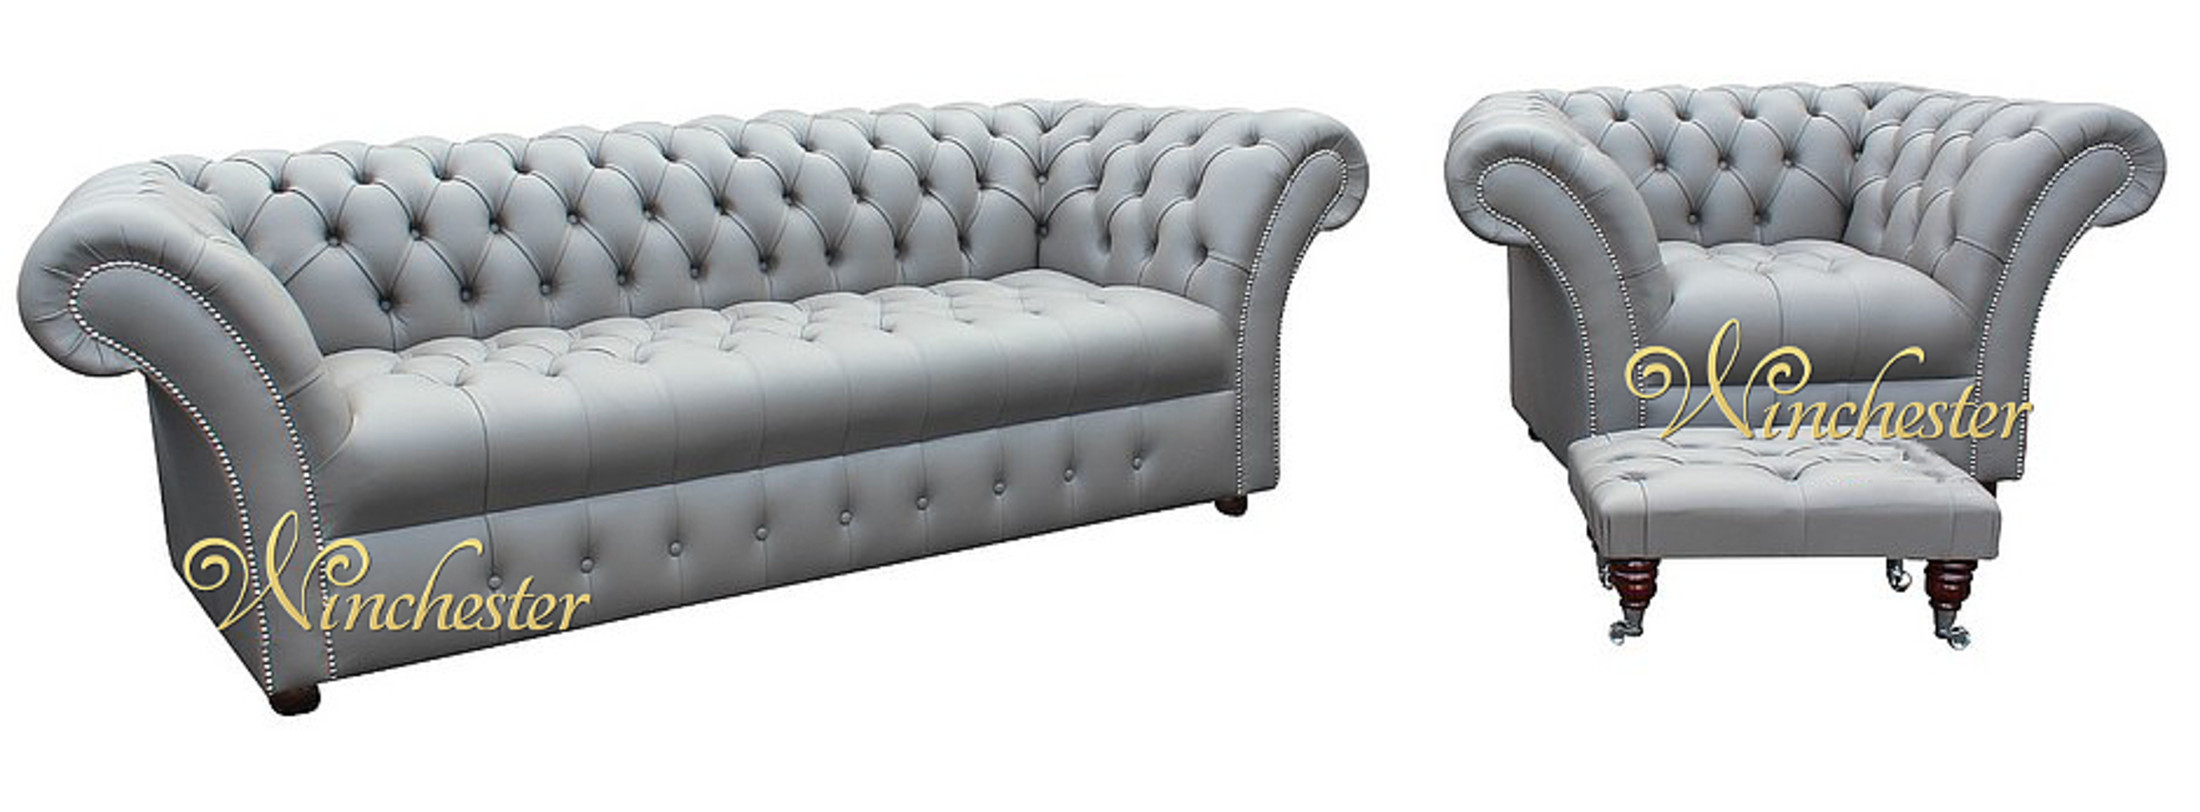 grey leather chesterfield sofa chesterfield-grosvenor-3-seater-armchair-footstool-sofa -settee-buttoned-seat-silver-birch-grey-leather-wc gvrcwqu